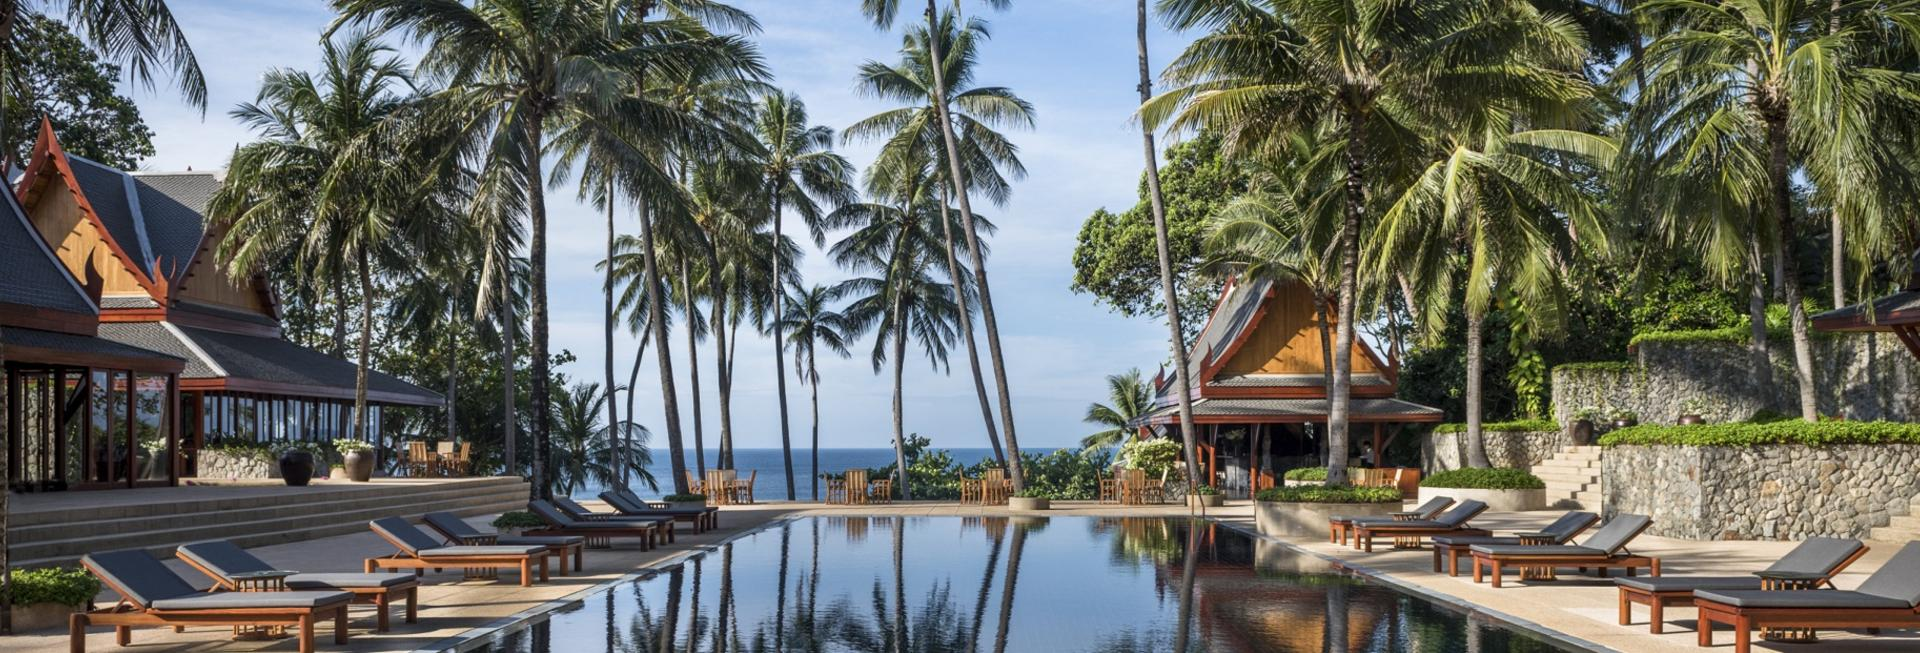 Aman Resort, Phuket